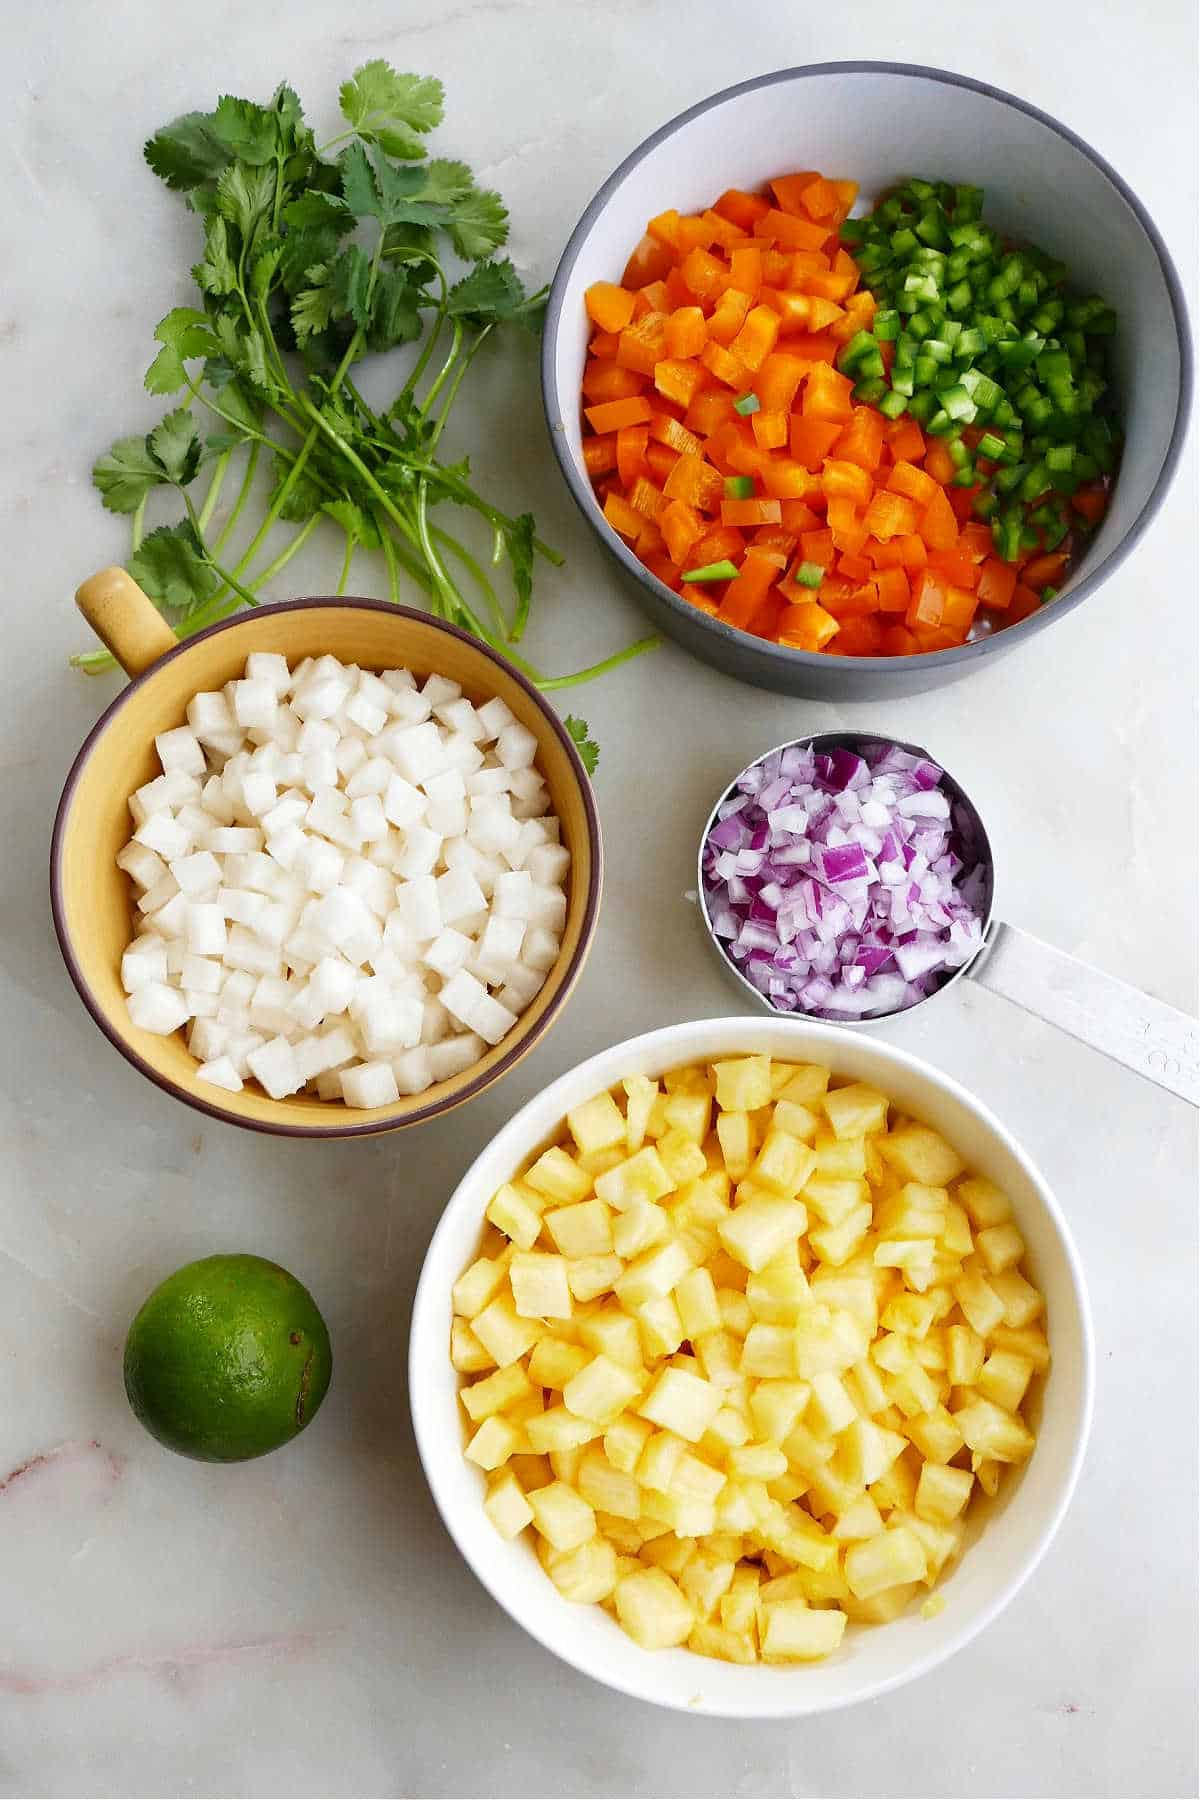 ingredients for pineapple jicama salsa spread out next to each other on a counter